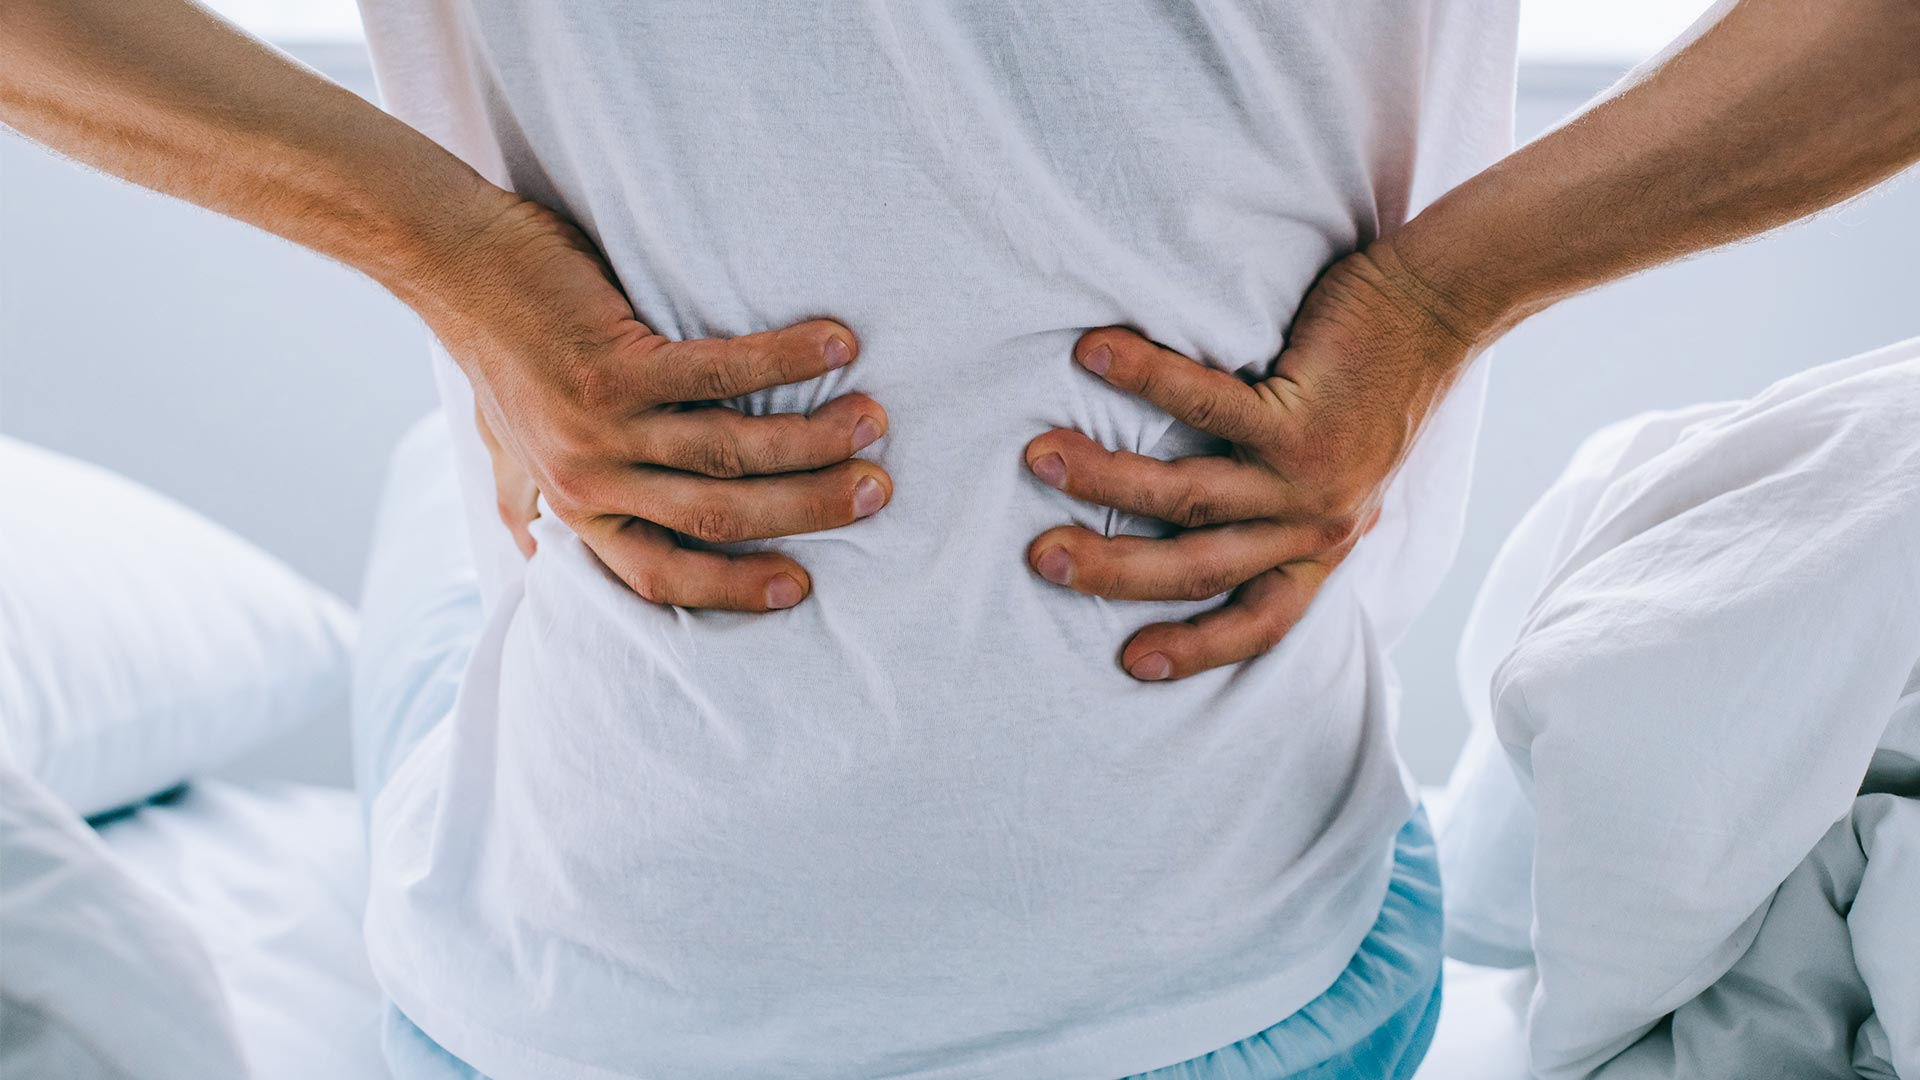 5 Ways To Prevent Back Pain